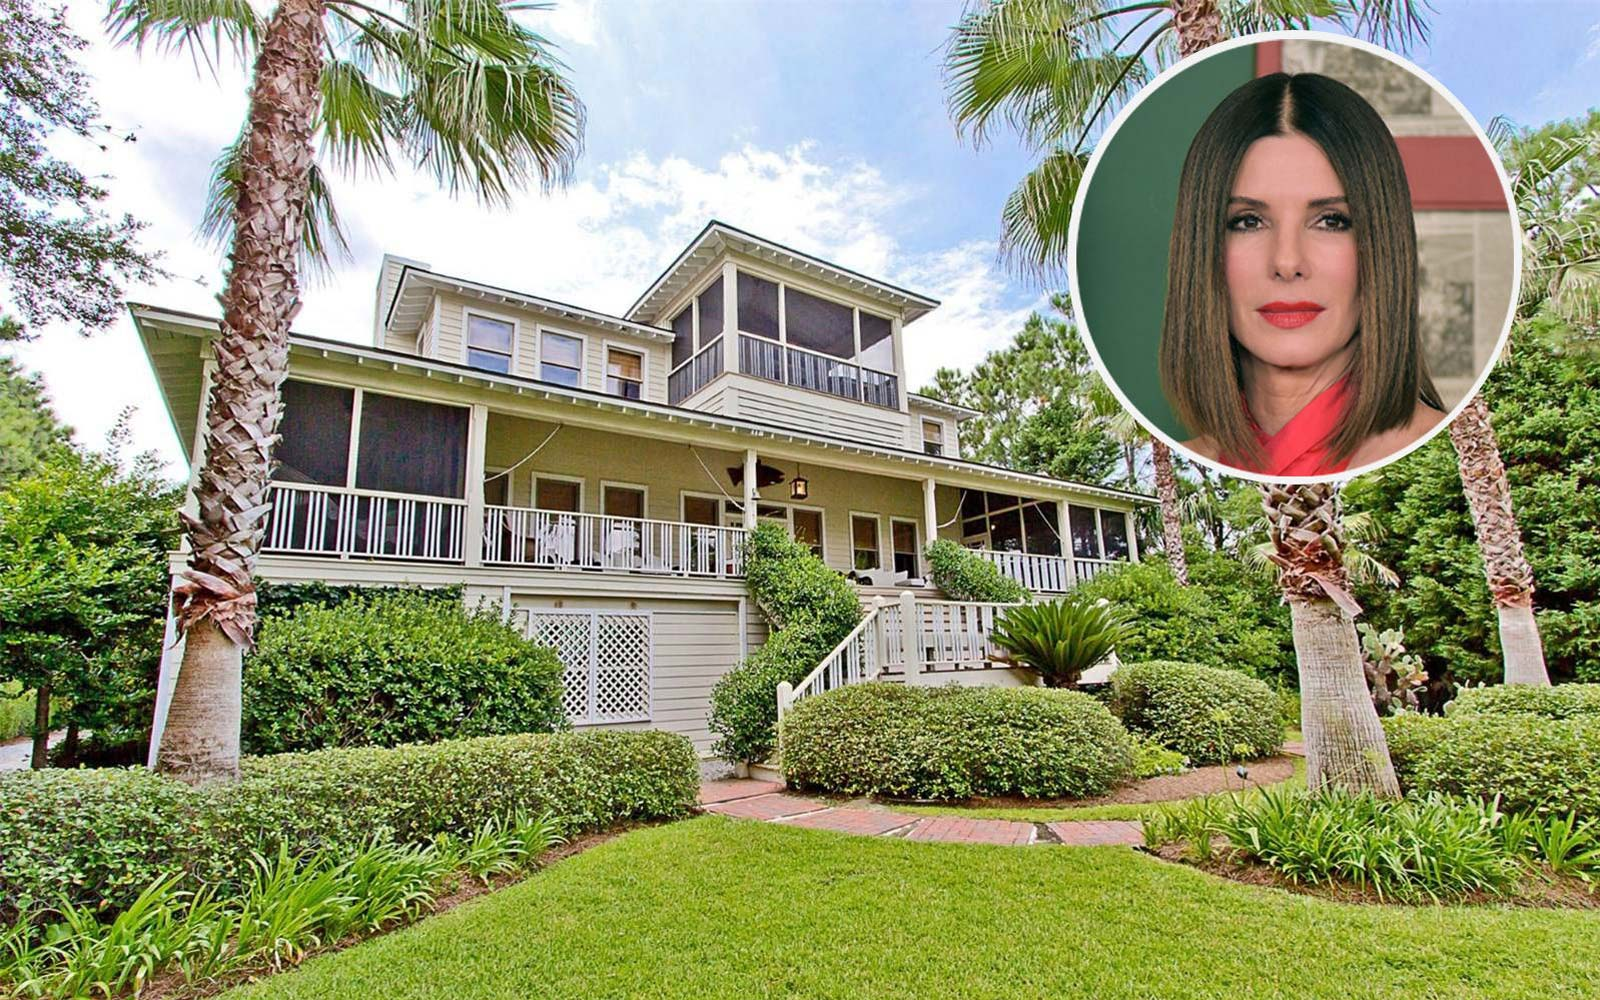 Sandra Bullock's Adorable Tybee Island Escape Is for Sale